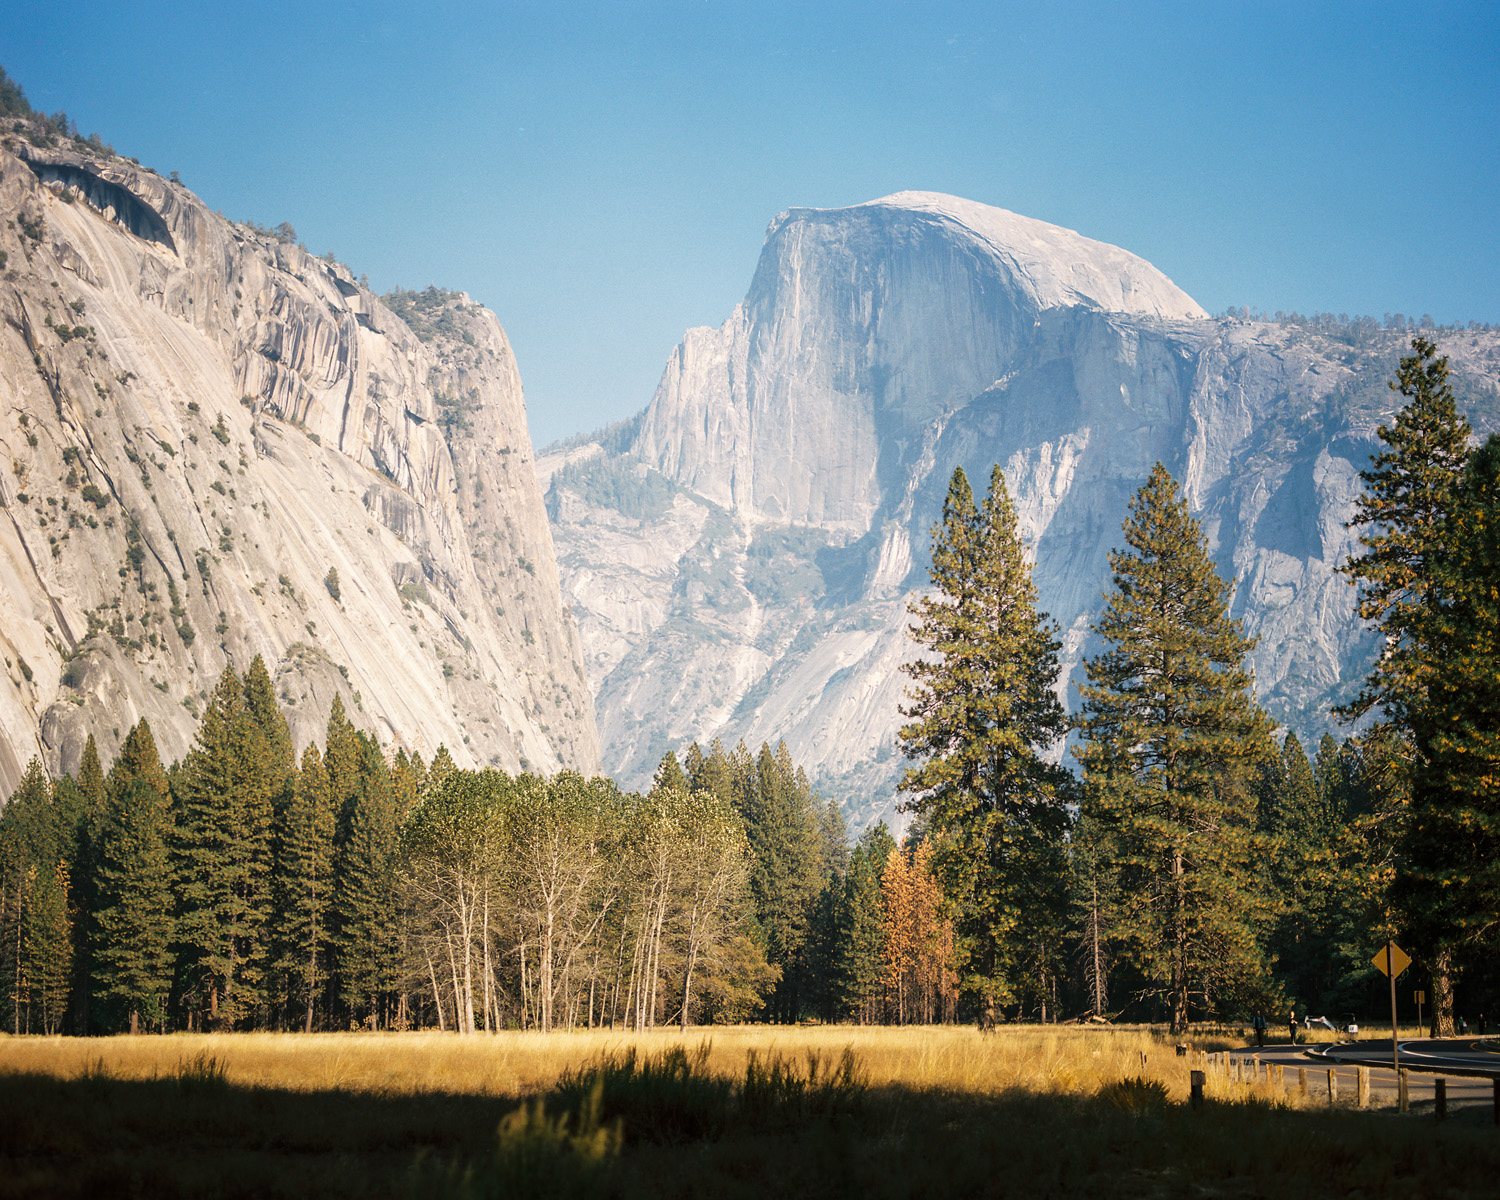 yosemite national park half dome peak on film.jpg